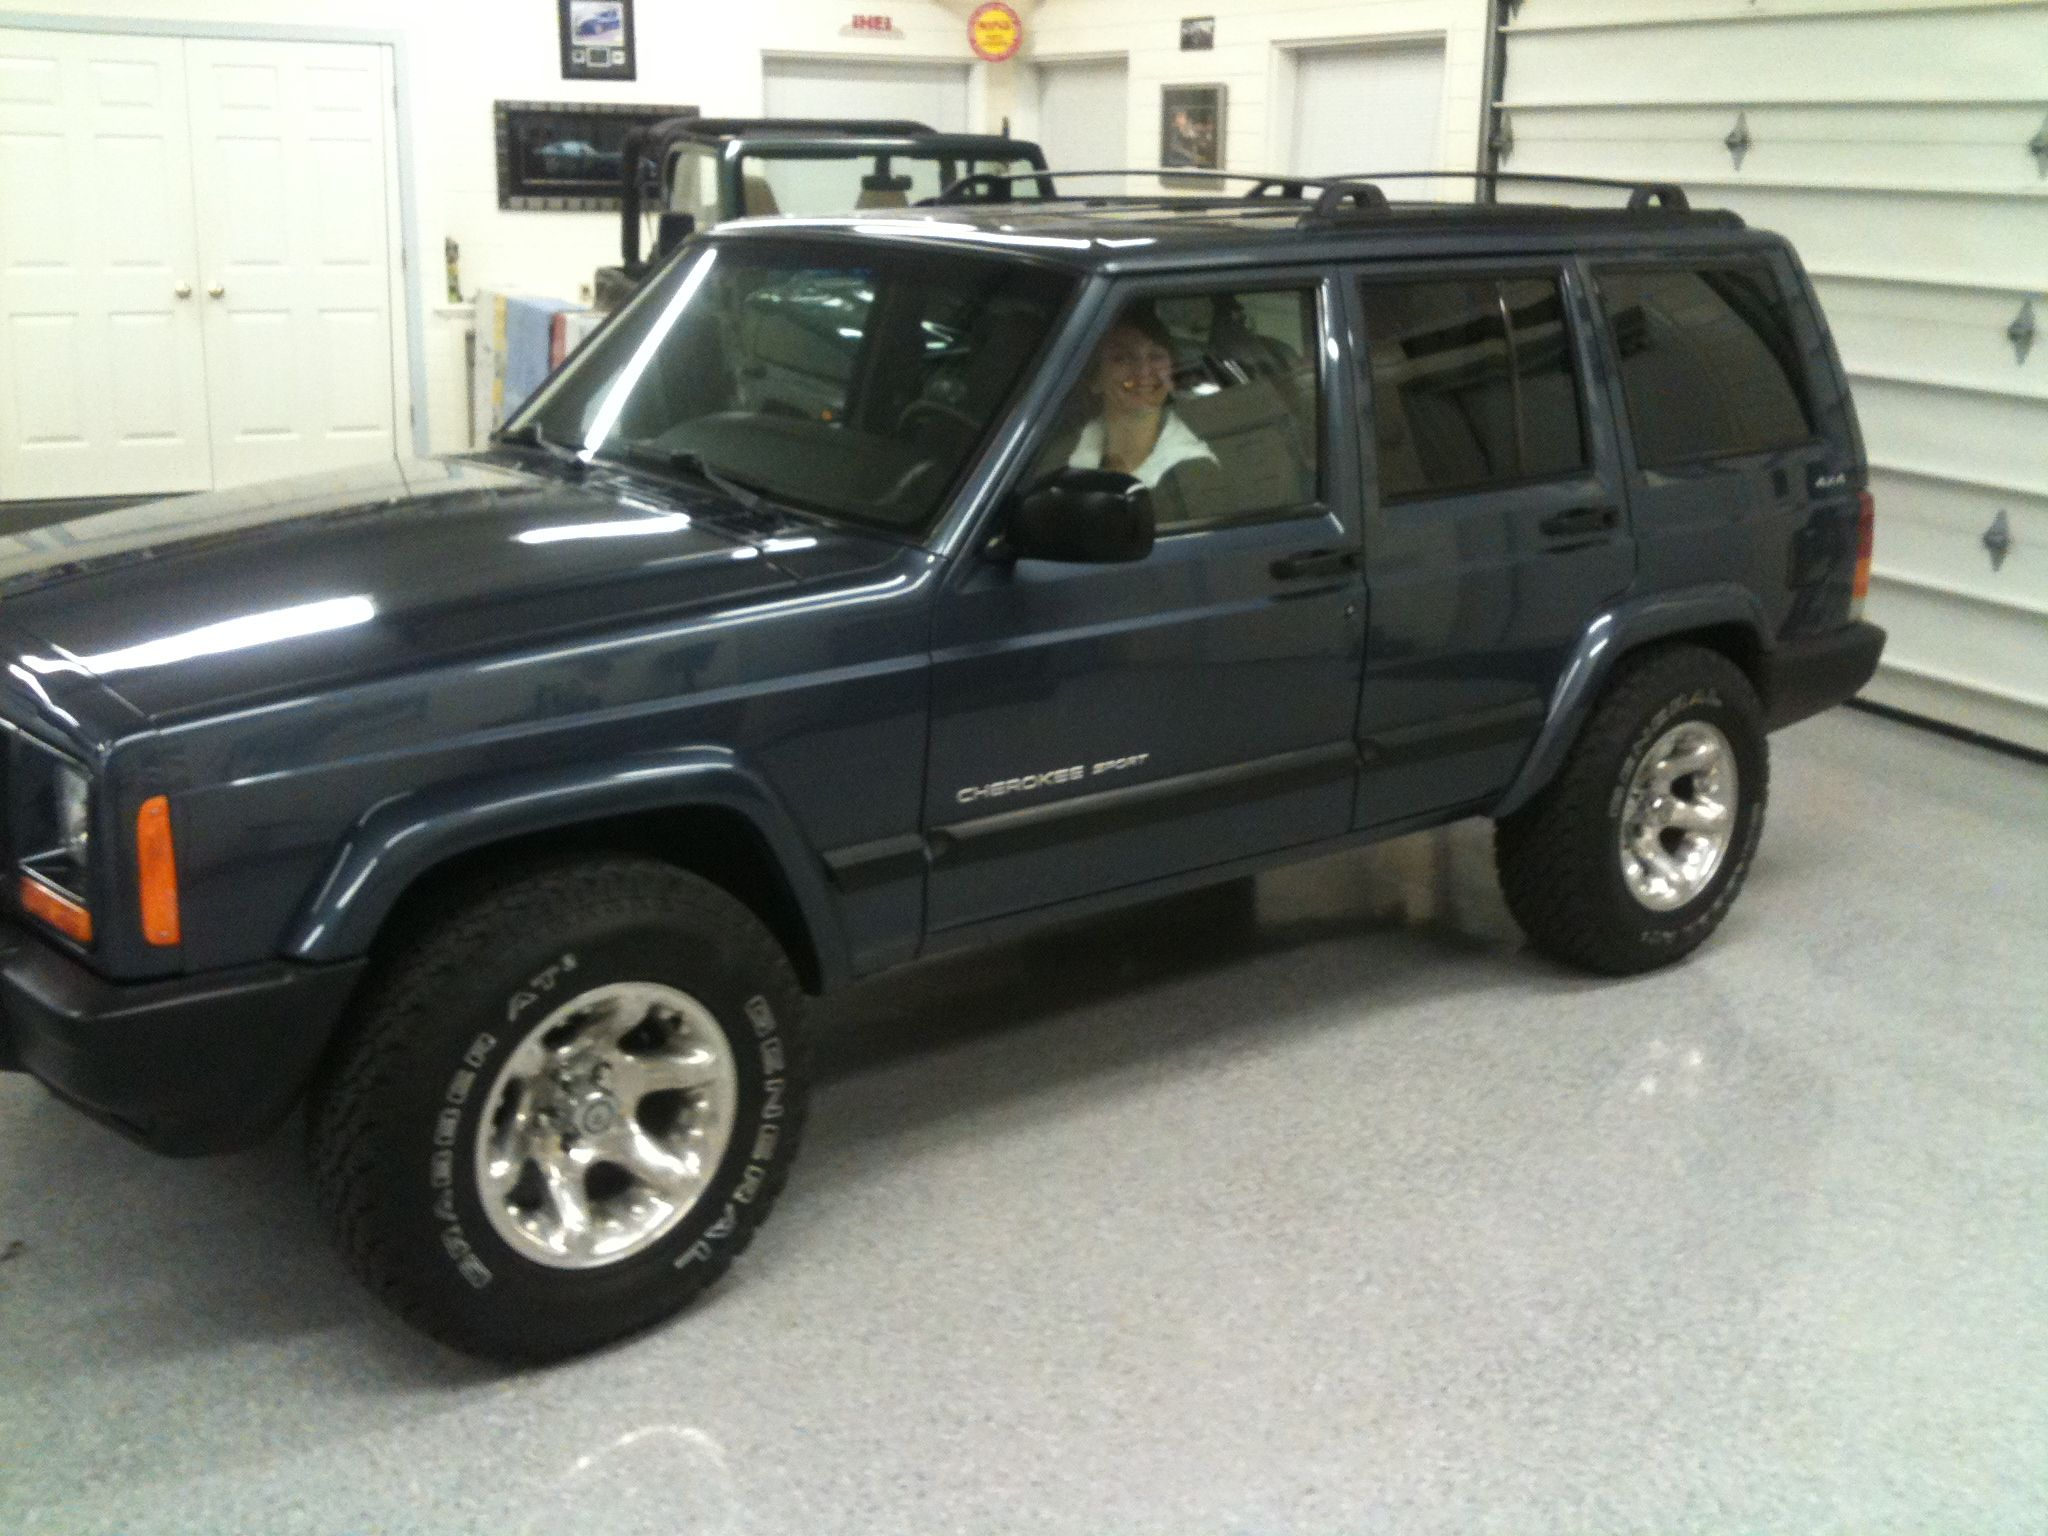 2001 jeep cherokee xj the color i 39 ve always wanted. Black Bedroom Furniture Sets. Home Design Ideas